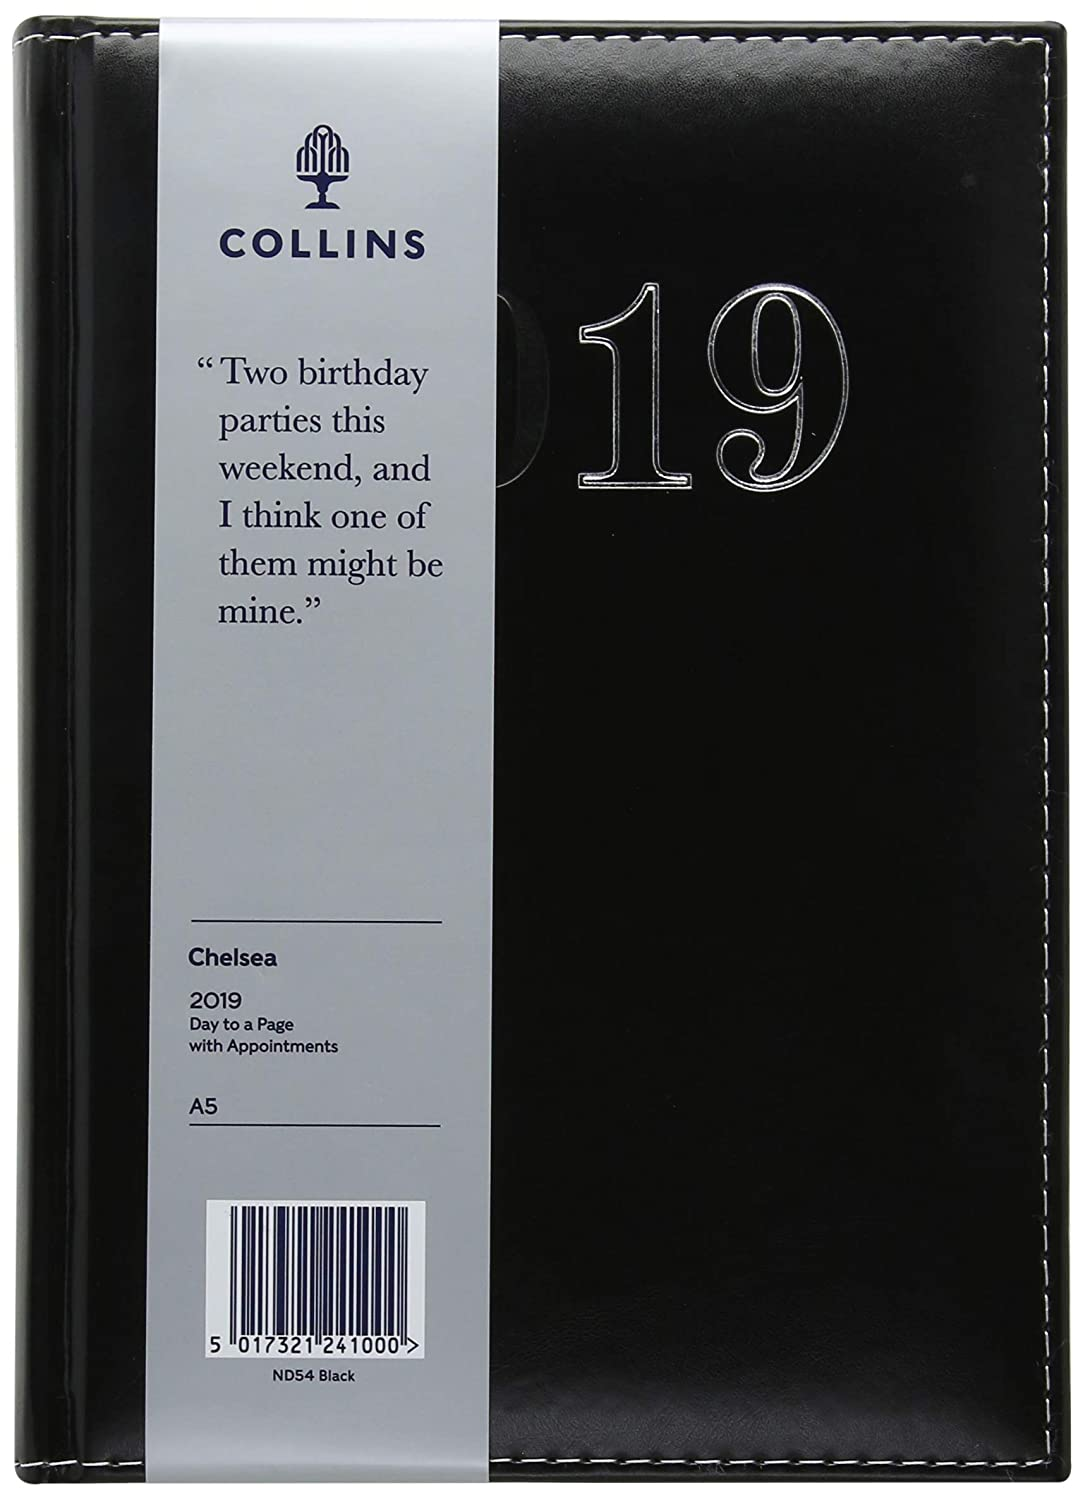 Amazon.com : Collins ND54 A5 2019 Chelsea Day to Page Diary ...